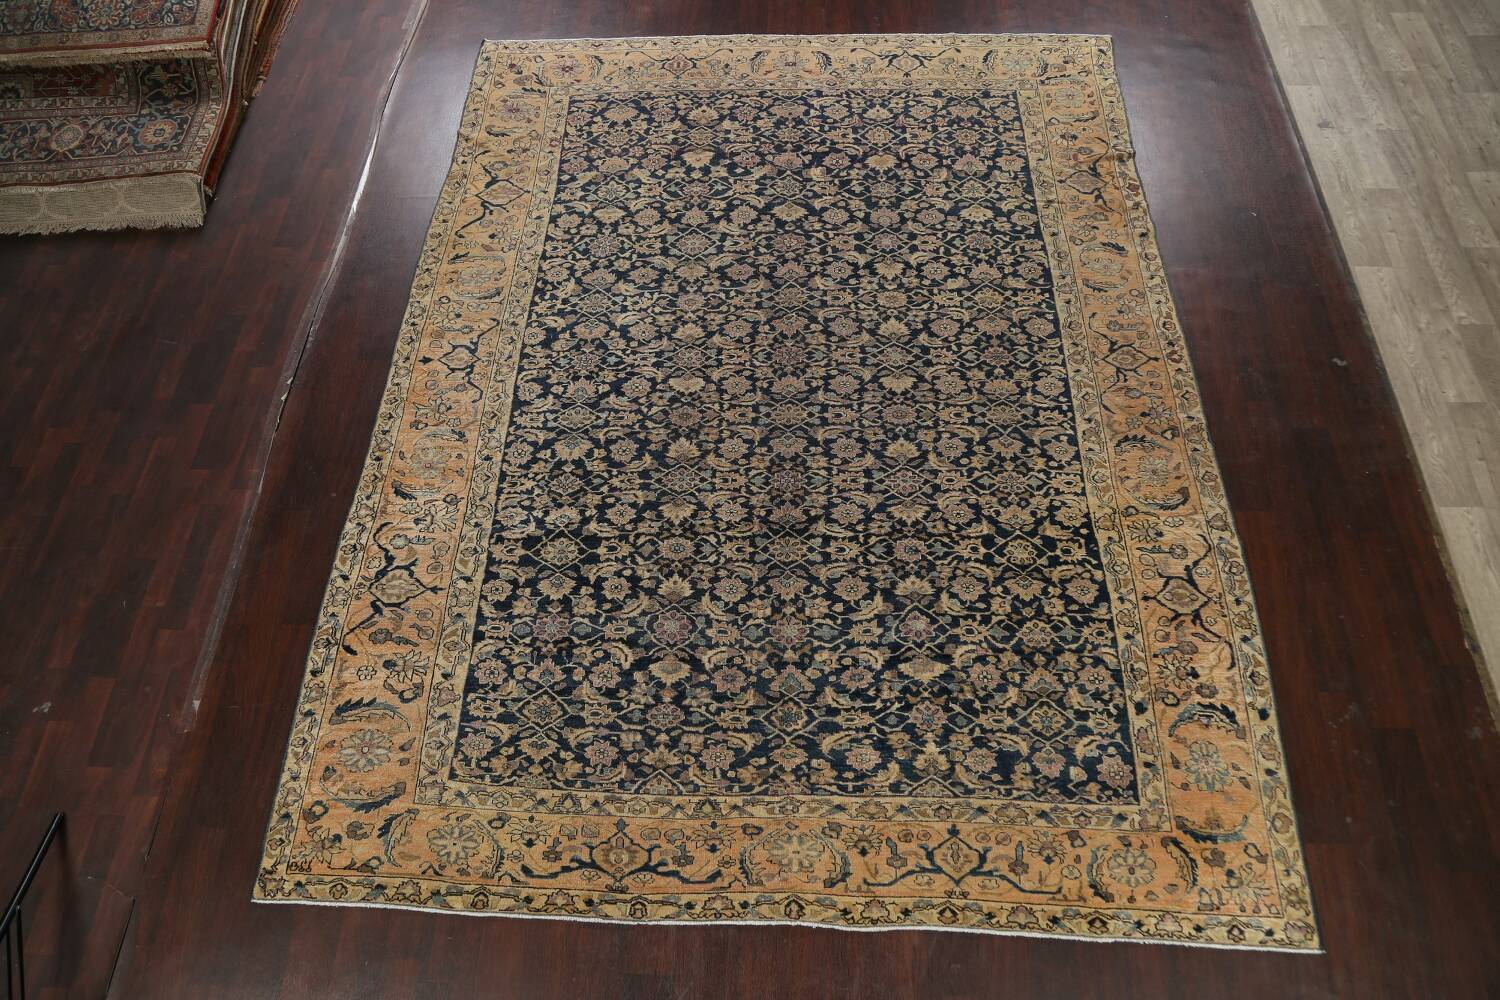 Pre-1900 Antique Vegetable Dye Malayer Persian Area Rug 9x12 image 2